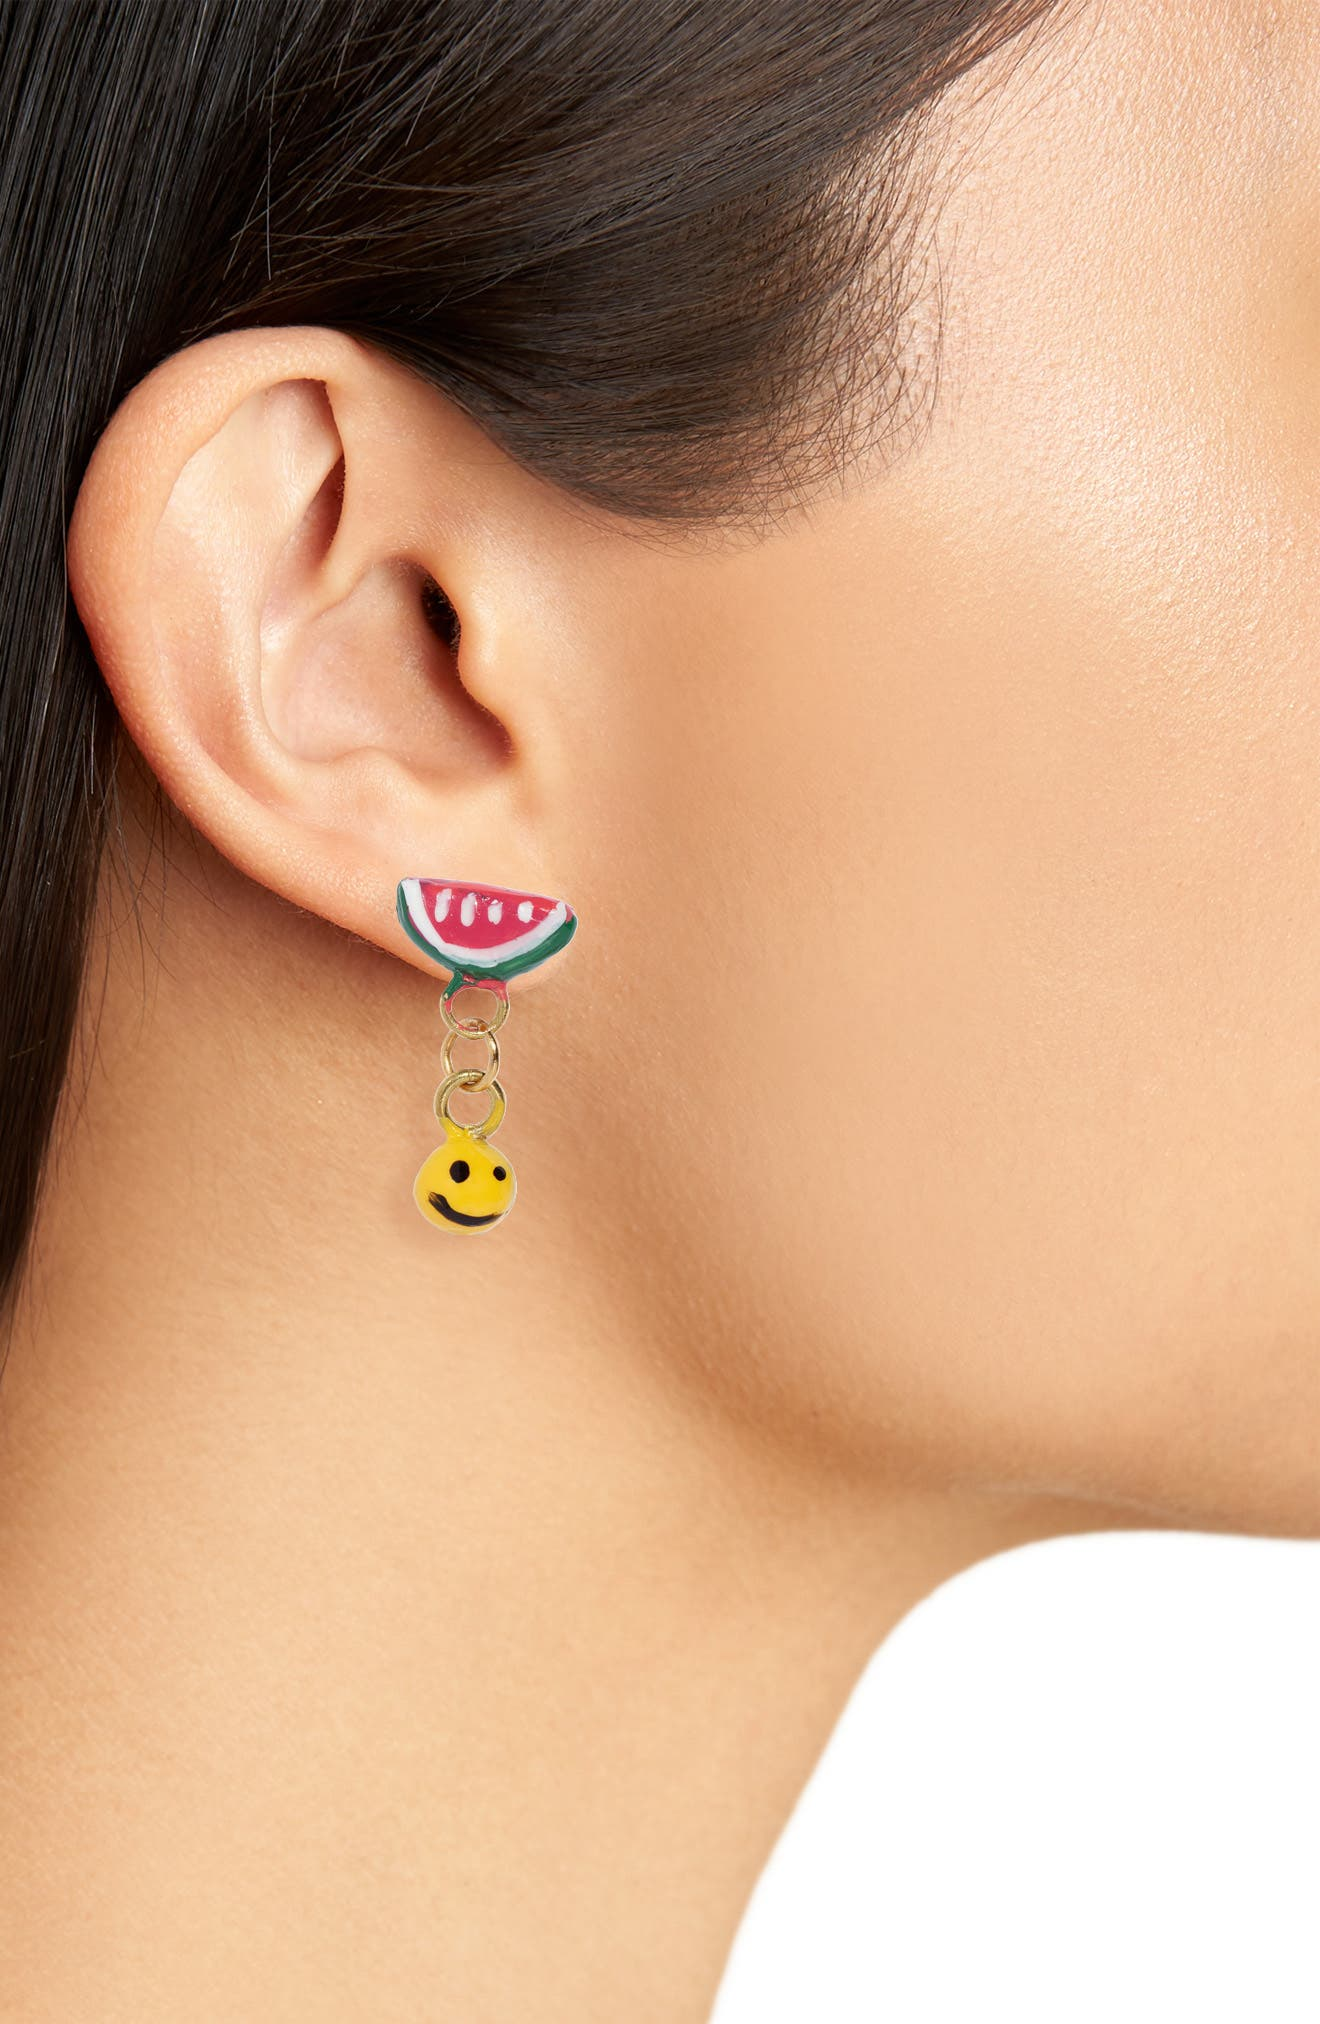 Twinkly Earrings,                             Alternate thumbnail 2, color,                             PINK/ YELLOW